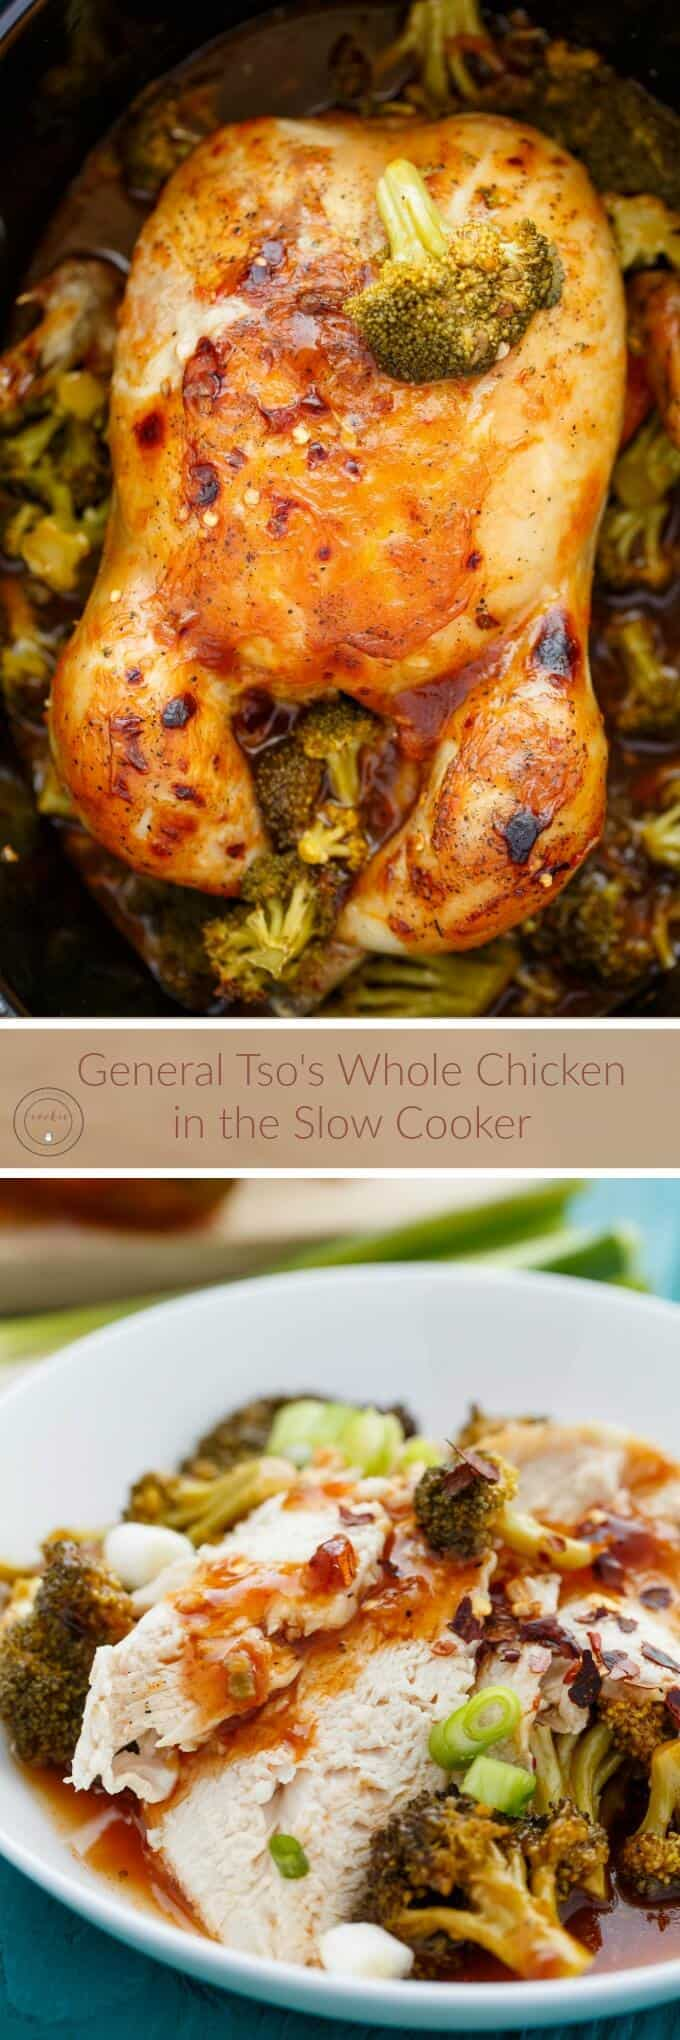 General Tso's Whole Chicken in the Slow Cooker